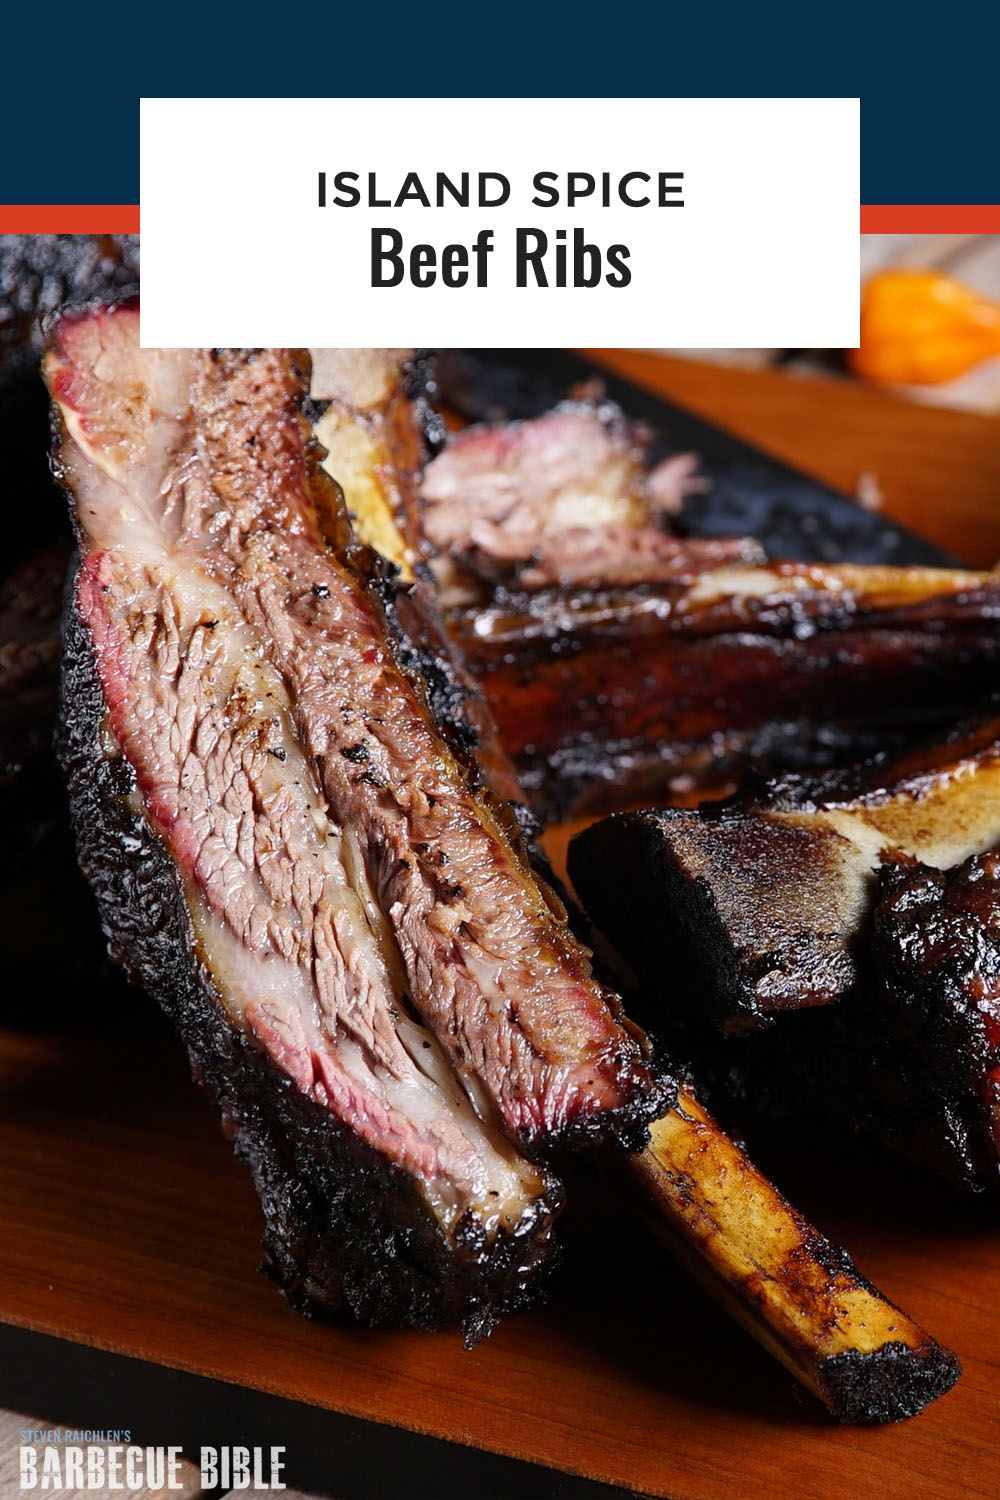 Island Spice Beef Ribs This Ribs Recipe With A Fresh Herb And Chili Spice Paste Is An Homage To The West Indian Commun Beef Ribs Recipe Rib Recipes Beef Ribs